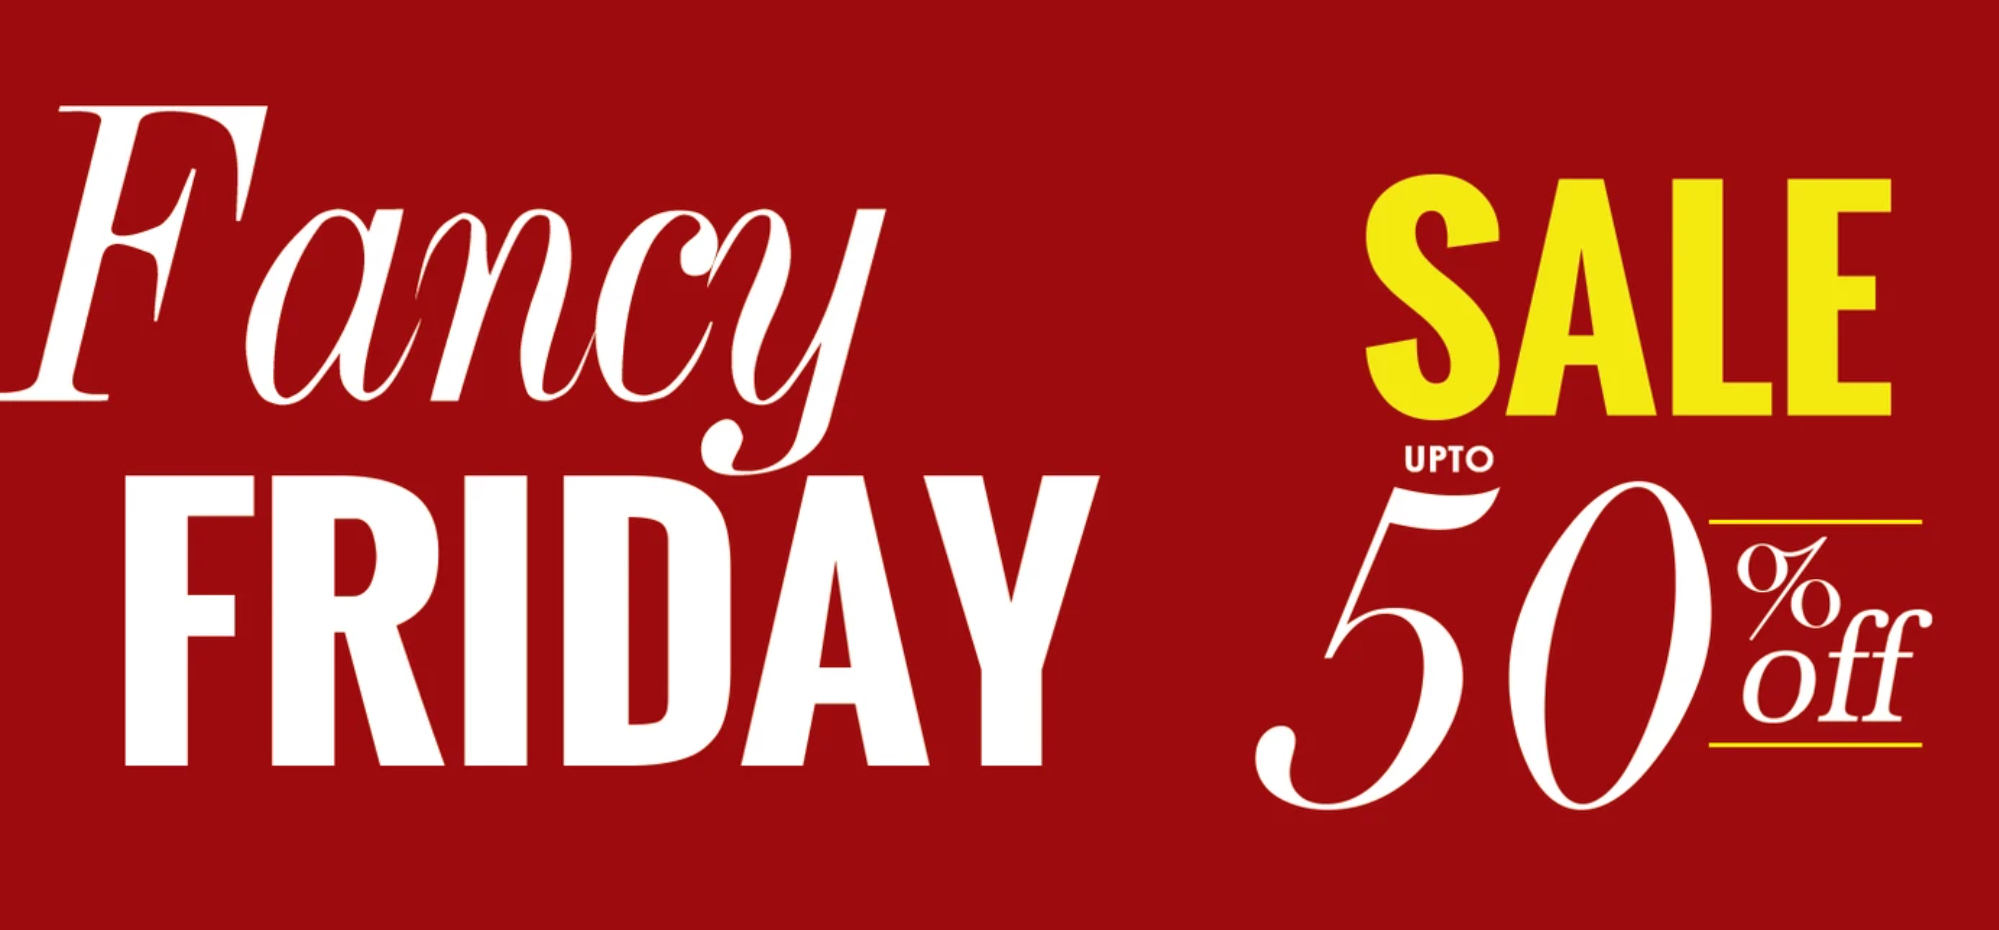 Chinyere - Fancy Friday Sale